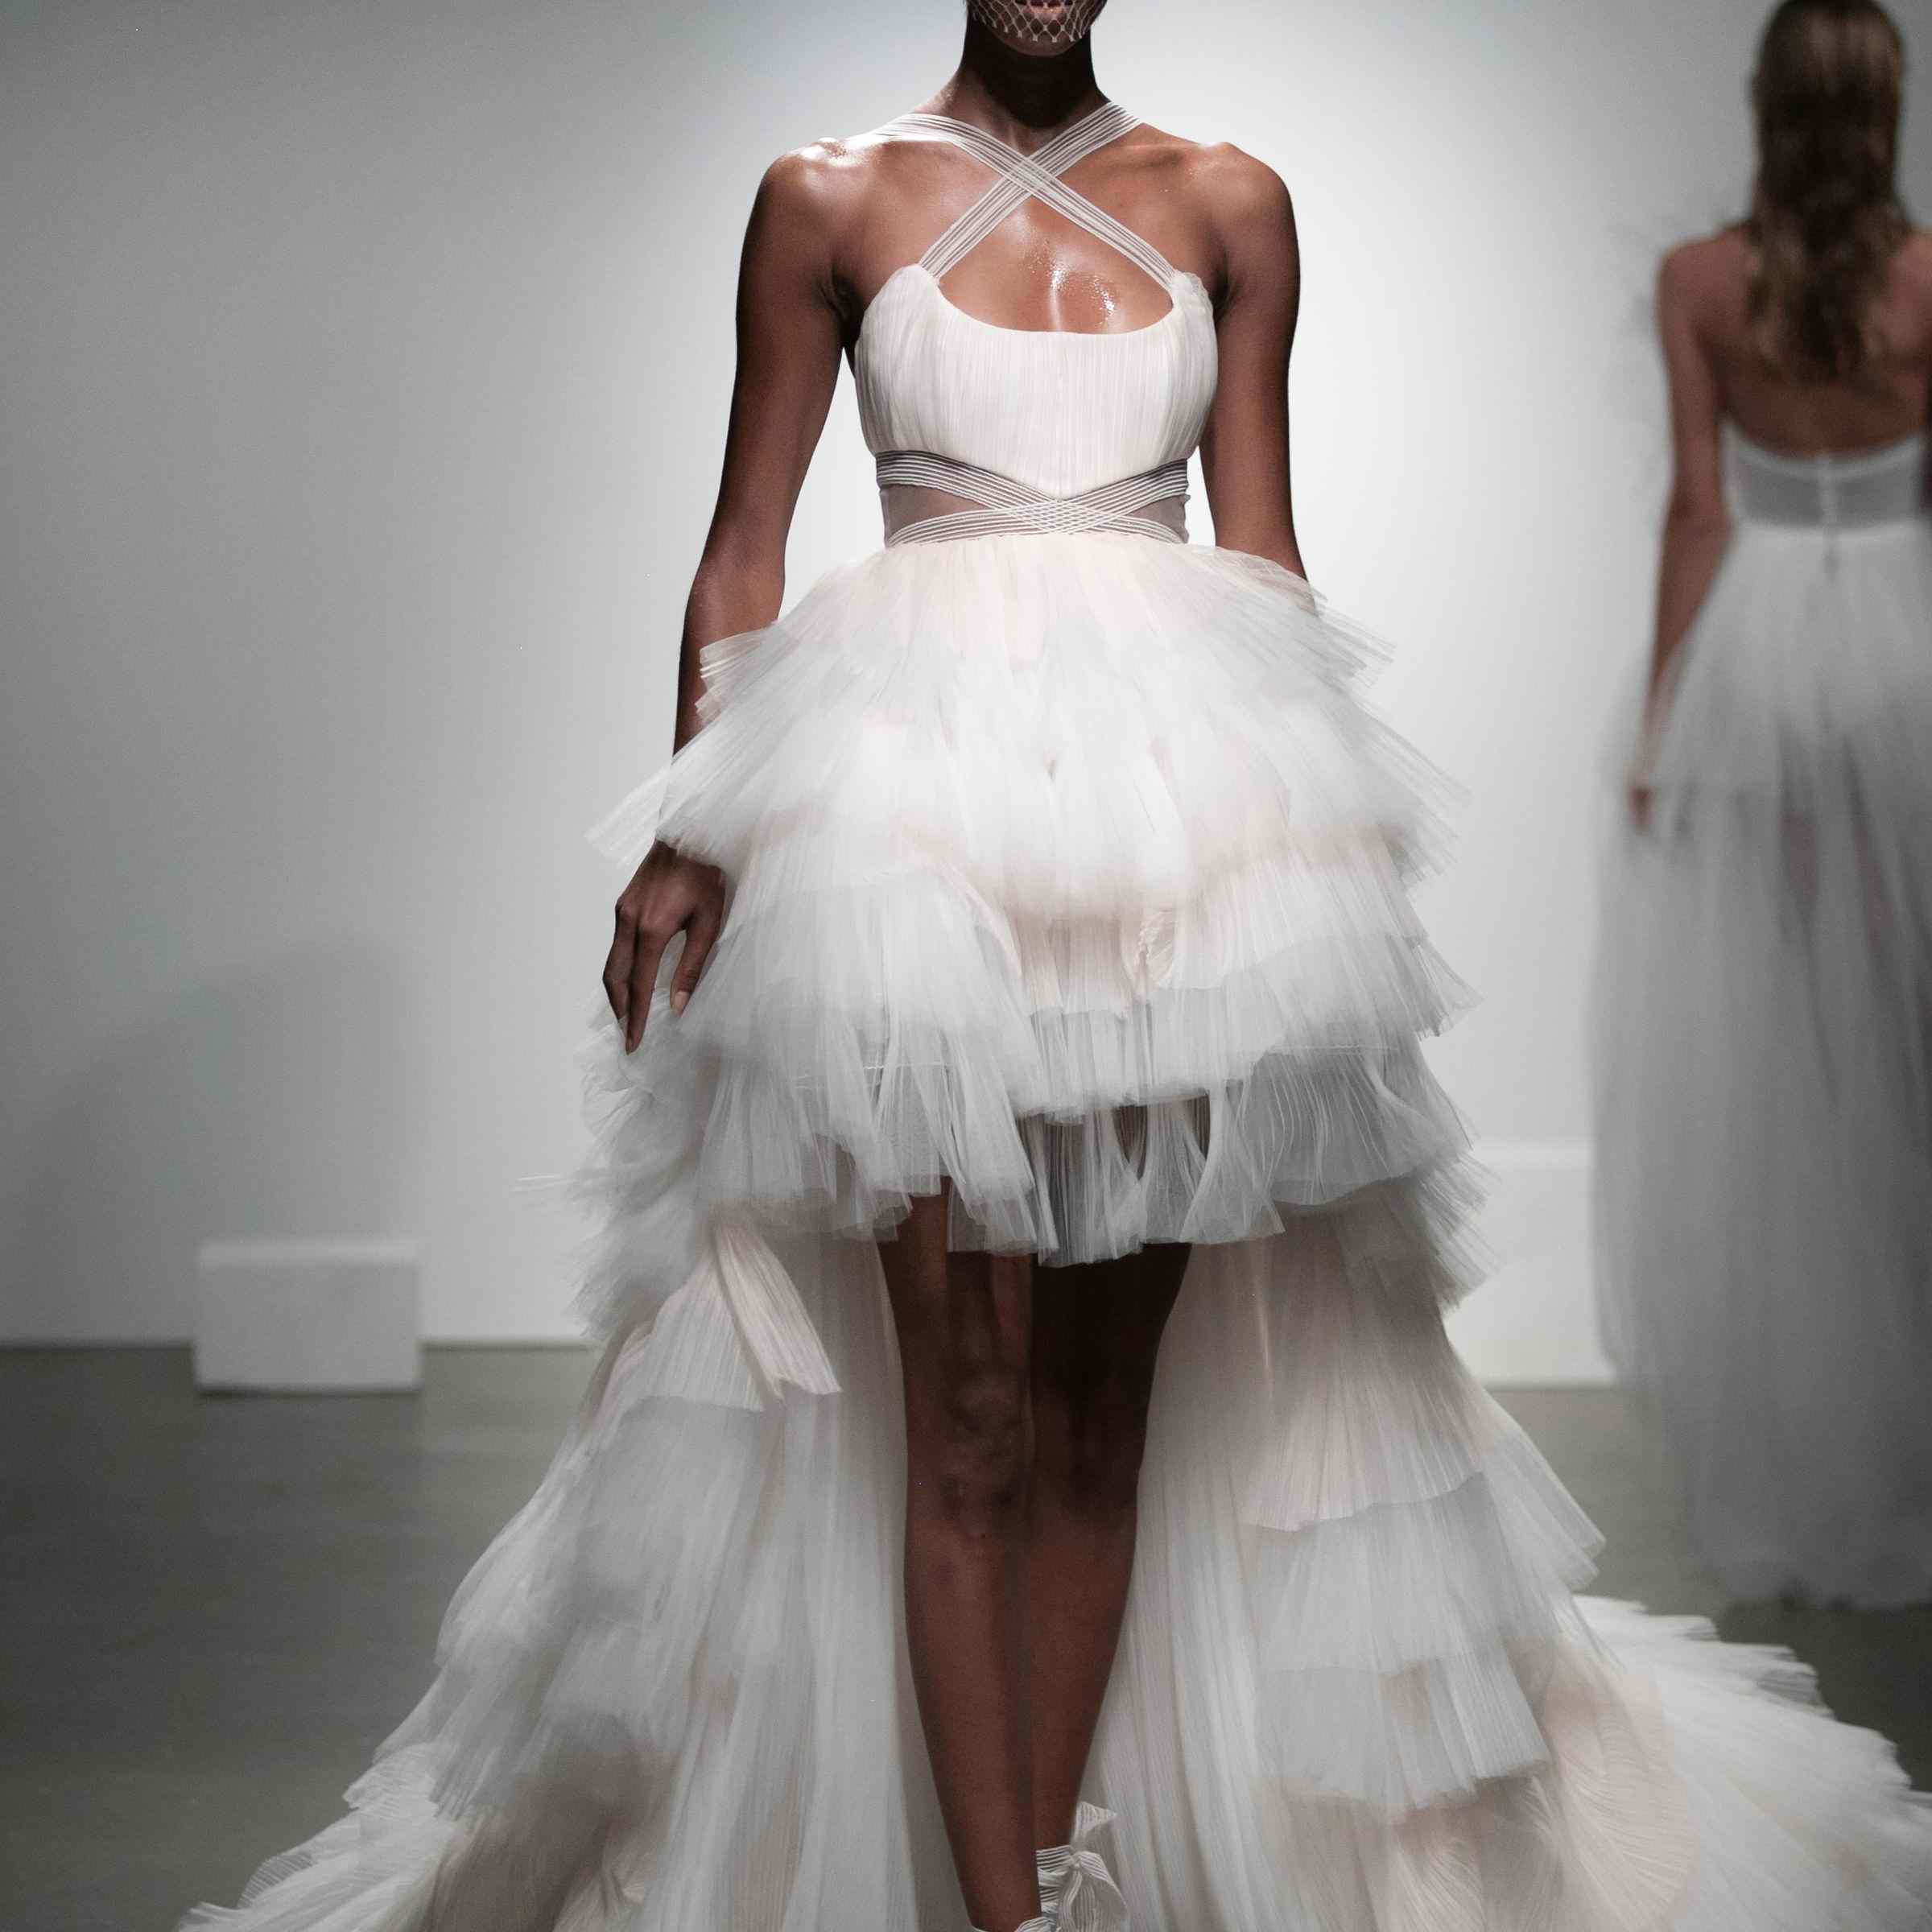 Model in flounced tulle dress with high-low hem and crisscrossed neckline